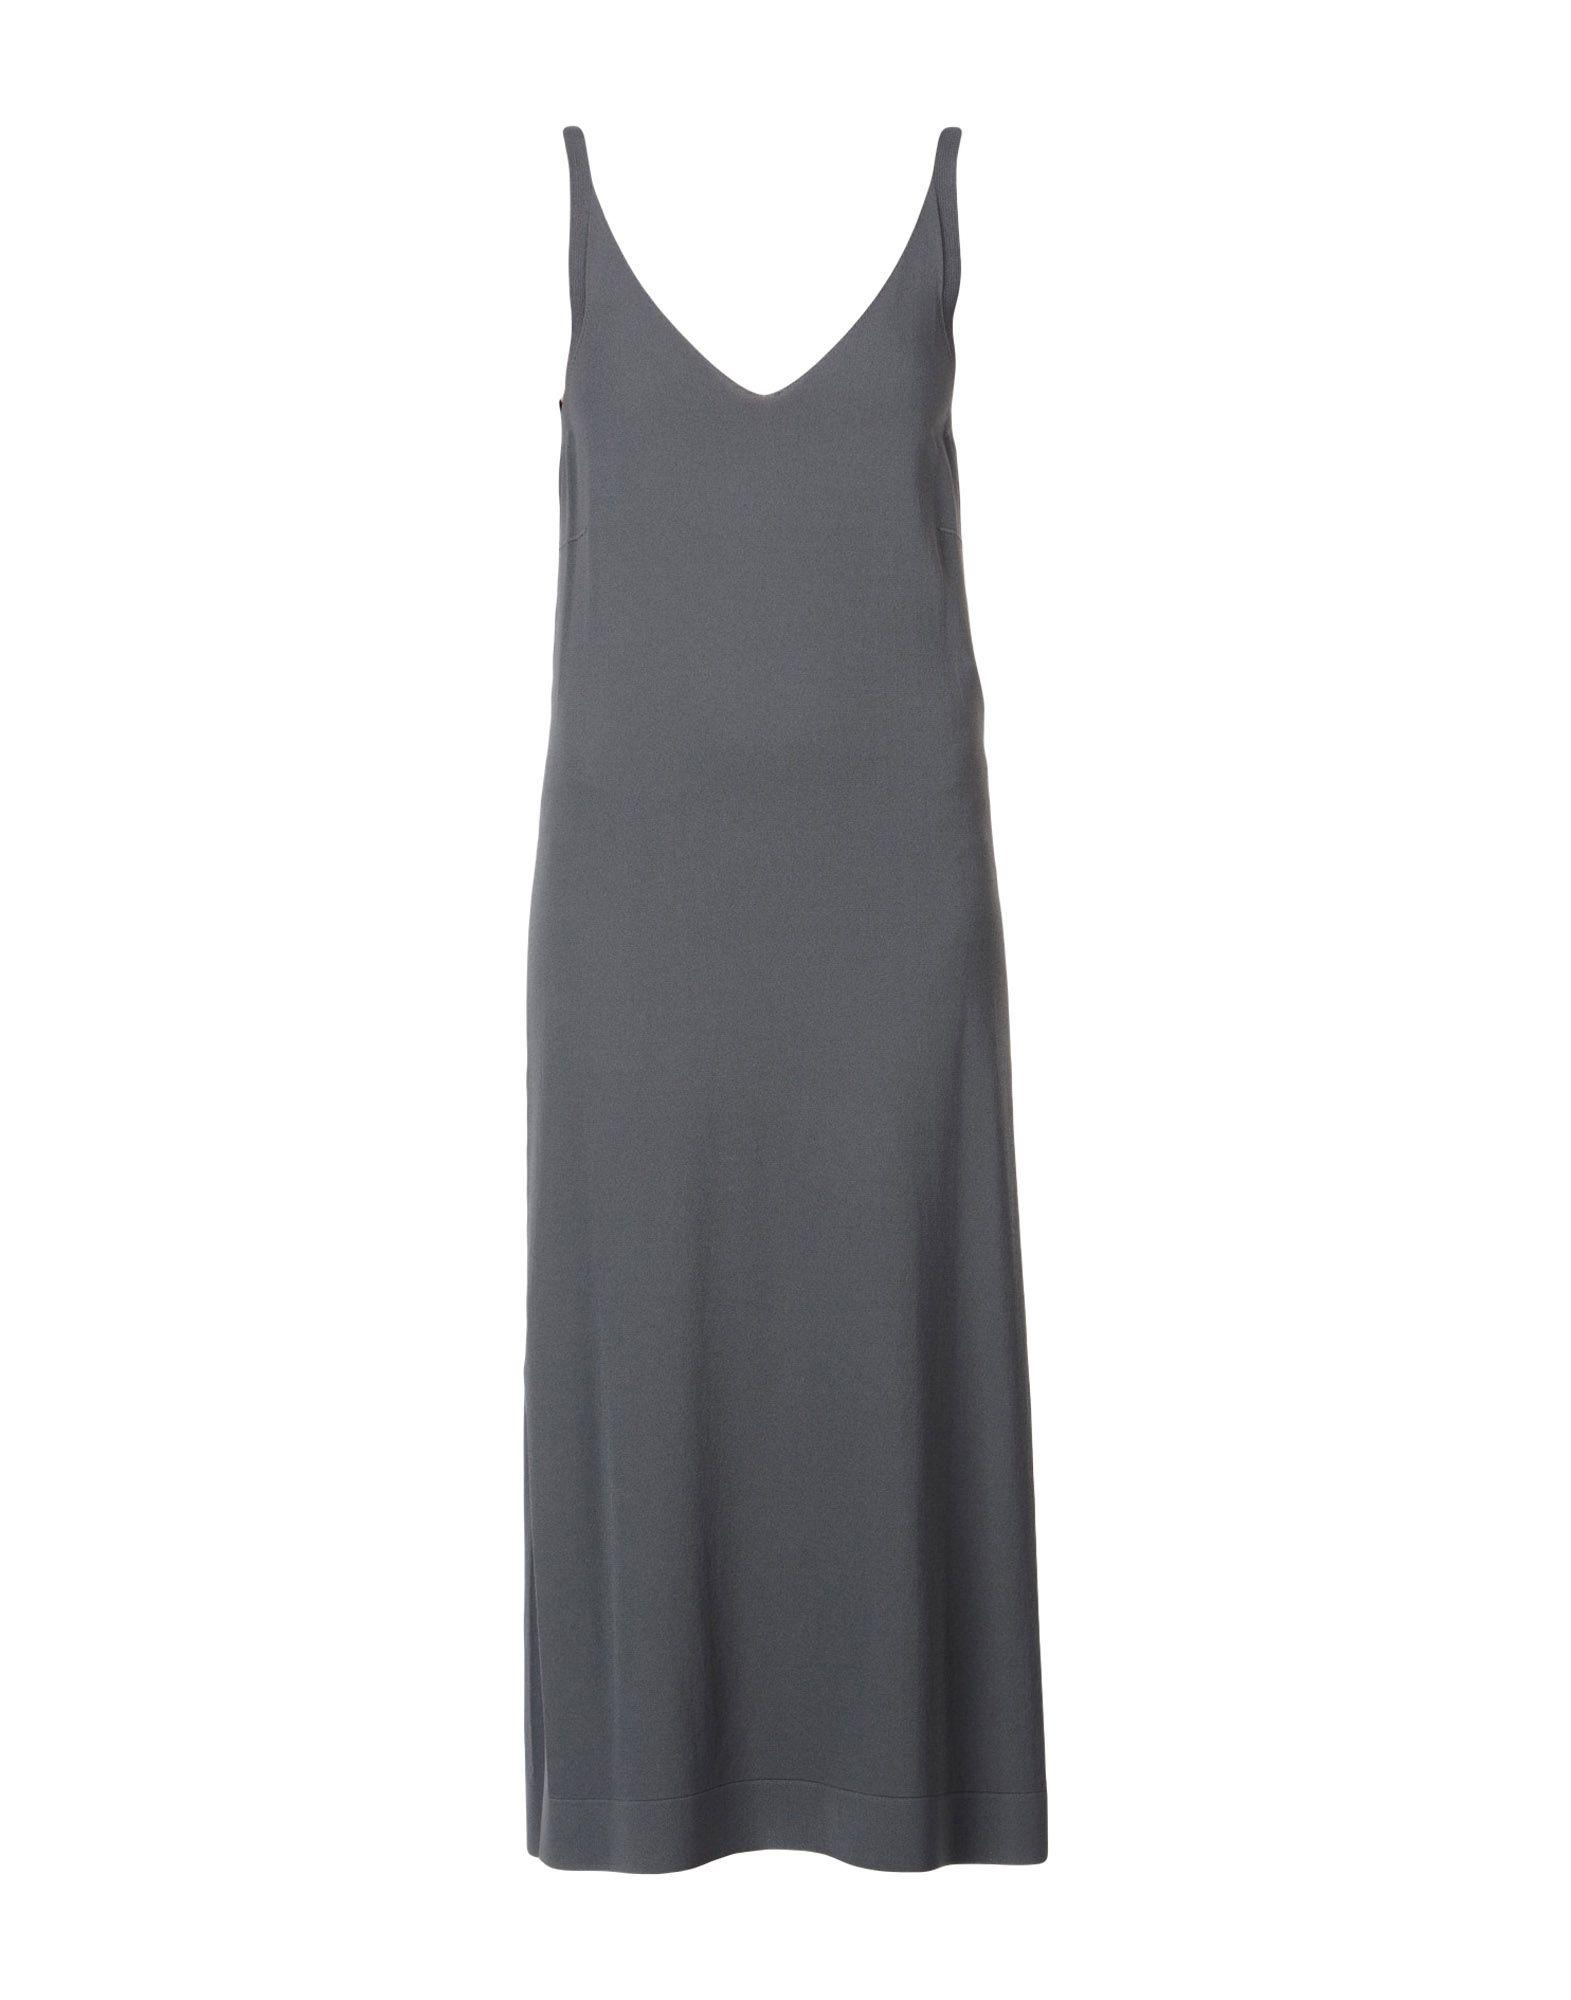 D.exterior 3/4 Length Dresses In Lead